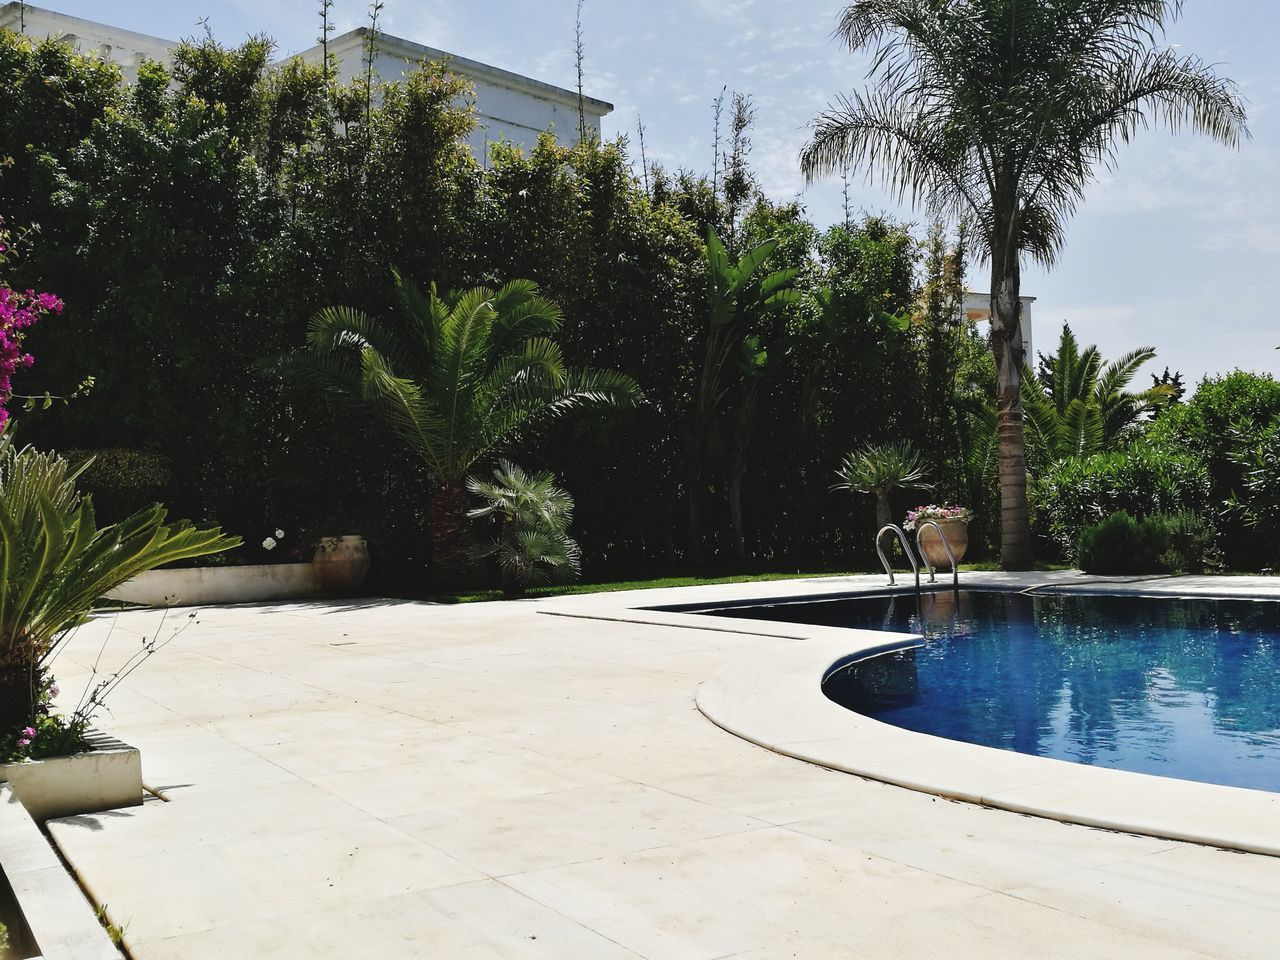 swimming pool, tree, water, palm tree, growth, day, outdoors, sky, summer, nature, no people, beauty in nature